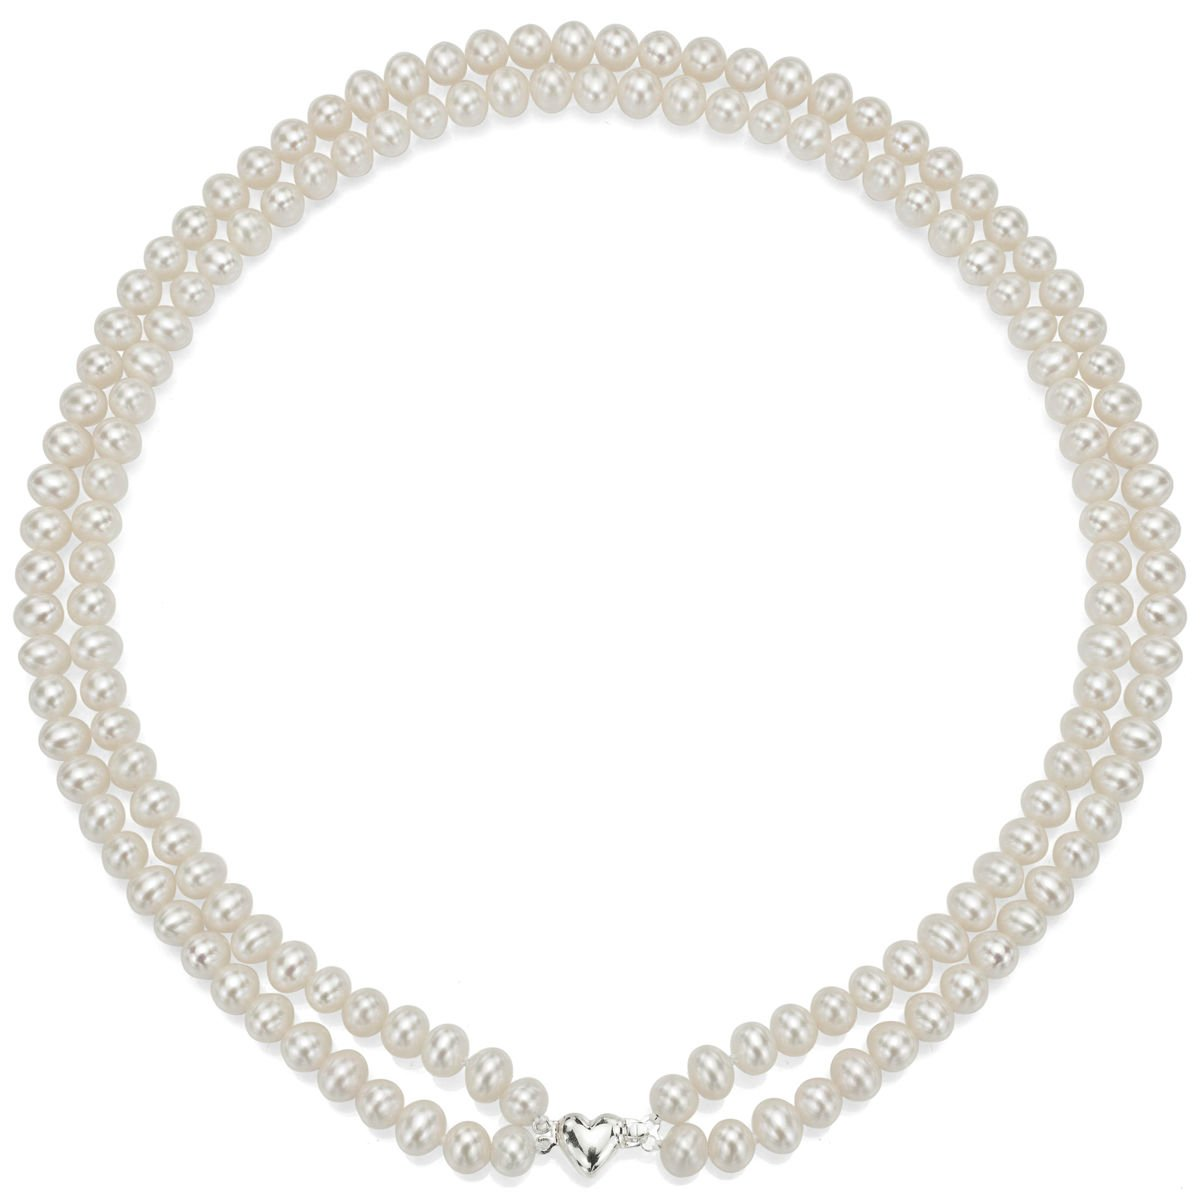 Heart Shape Sterling Silver 2-rows 6-6.5mm White Freshwater Cultured High Luster Pearl Necklace, 17'' by La Regis Jewelry (Image #1)